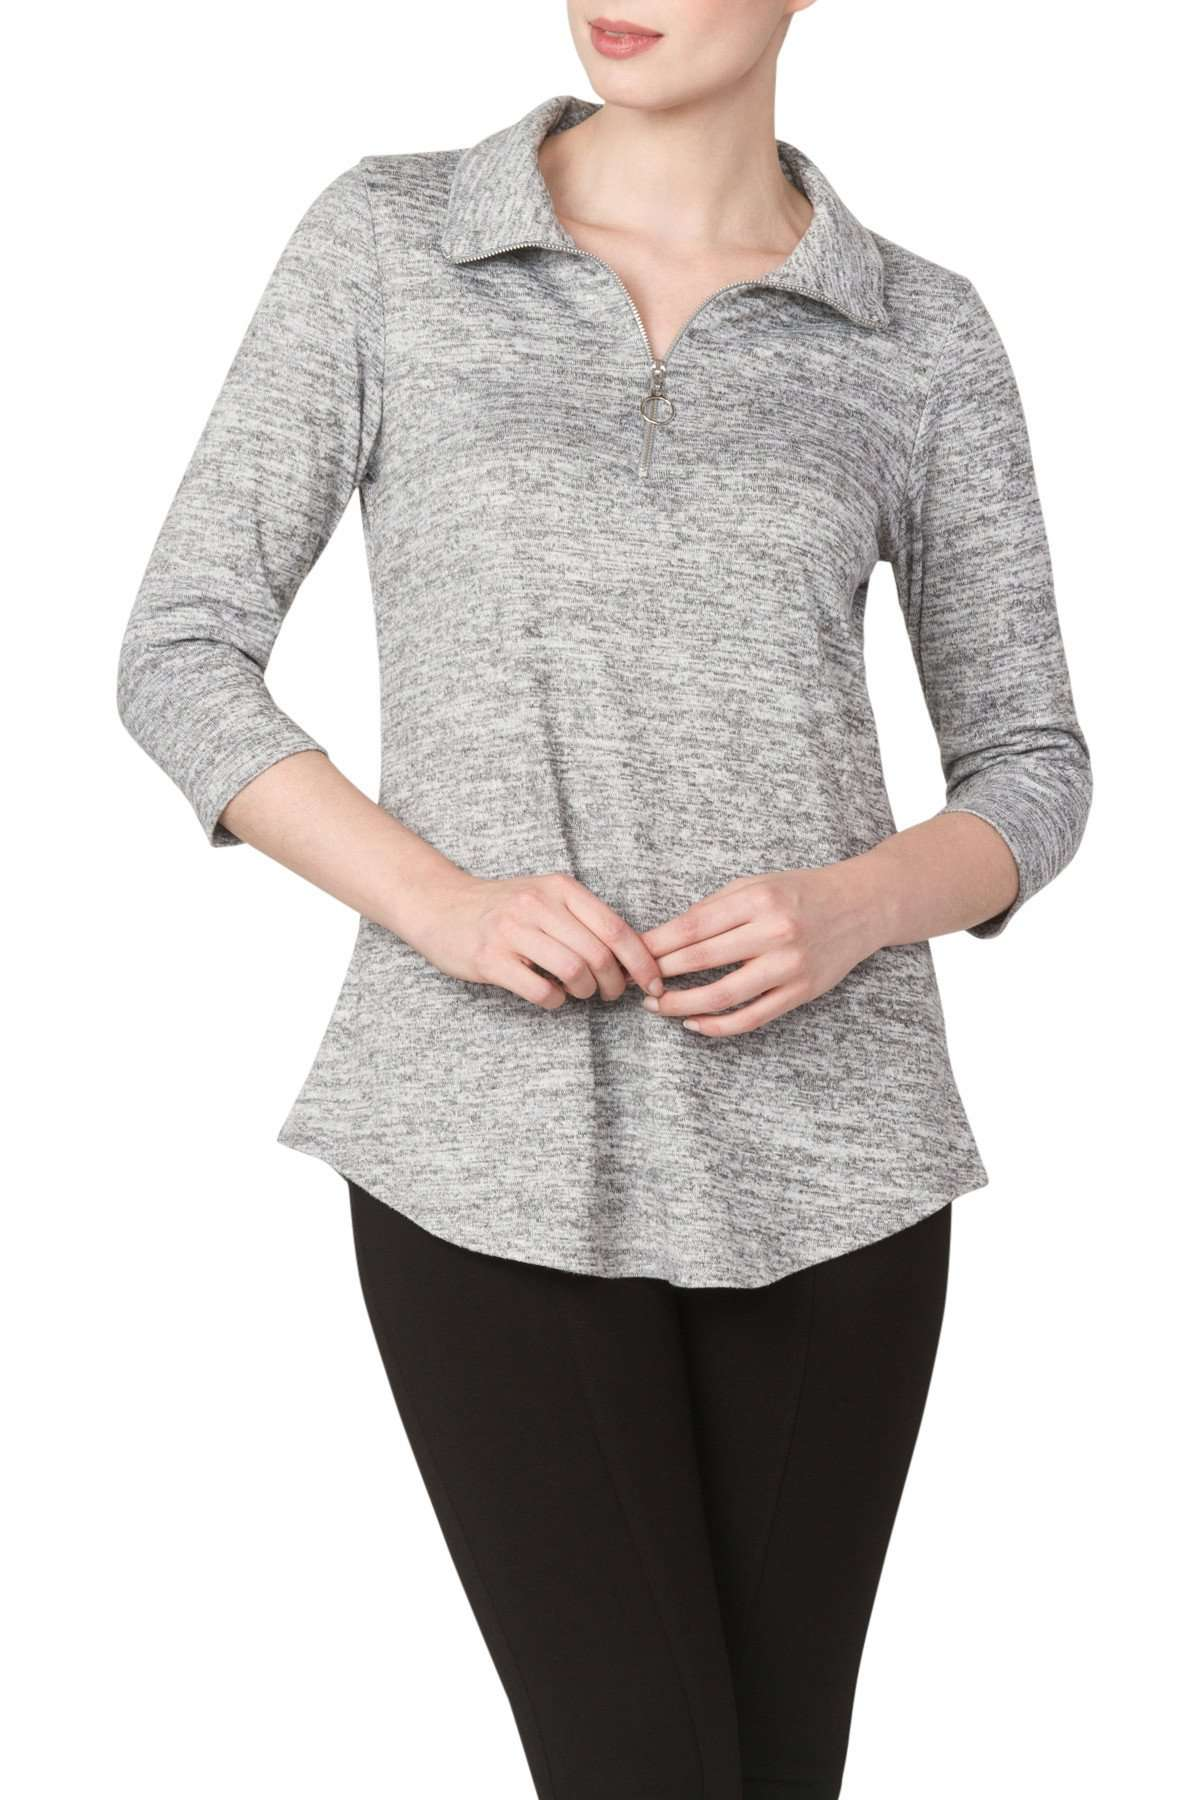 Sweater Ladies Silver Grey Comfort and Style - Yvonne Marie